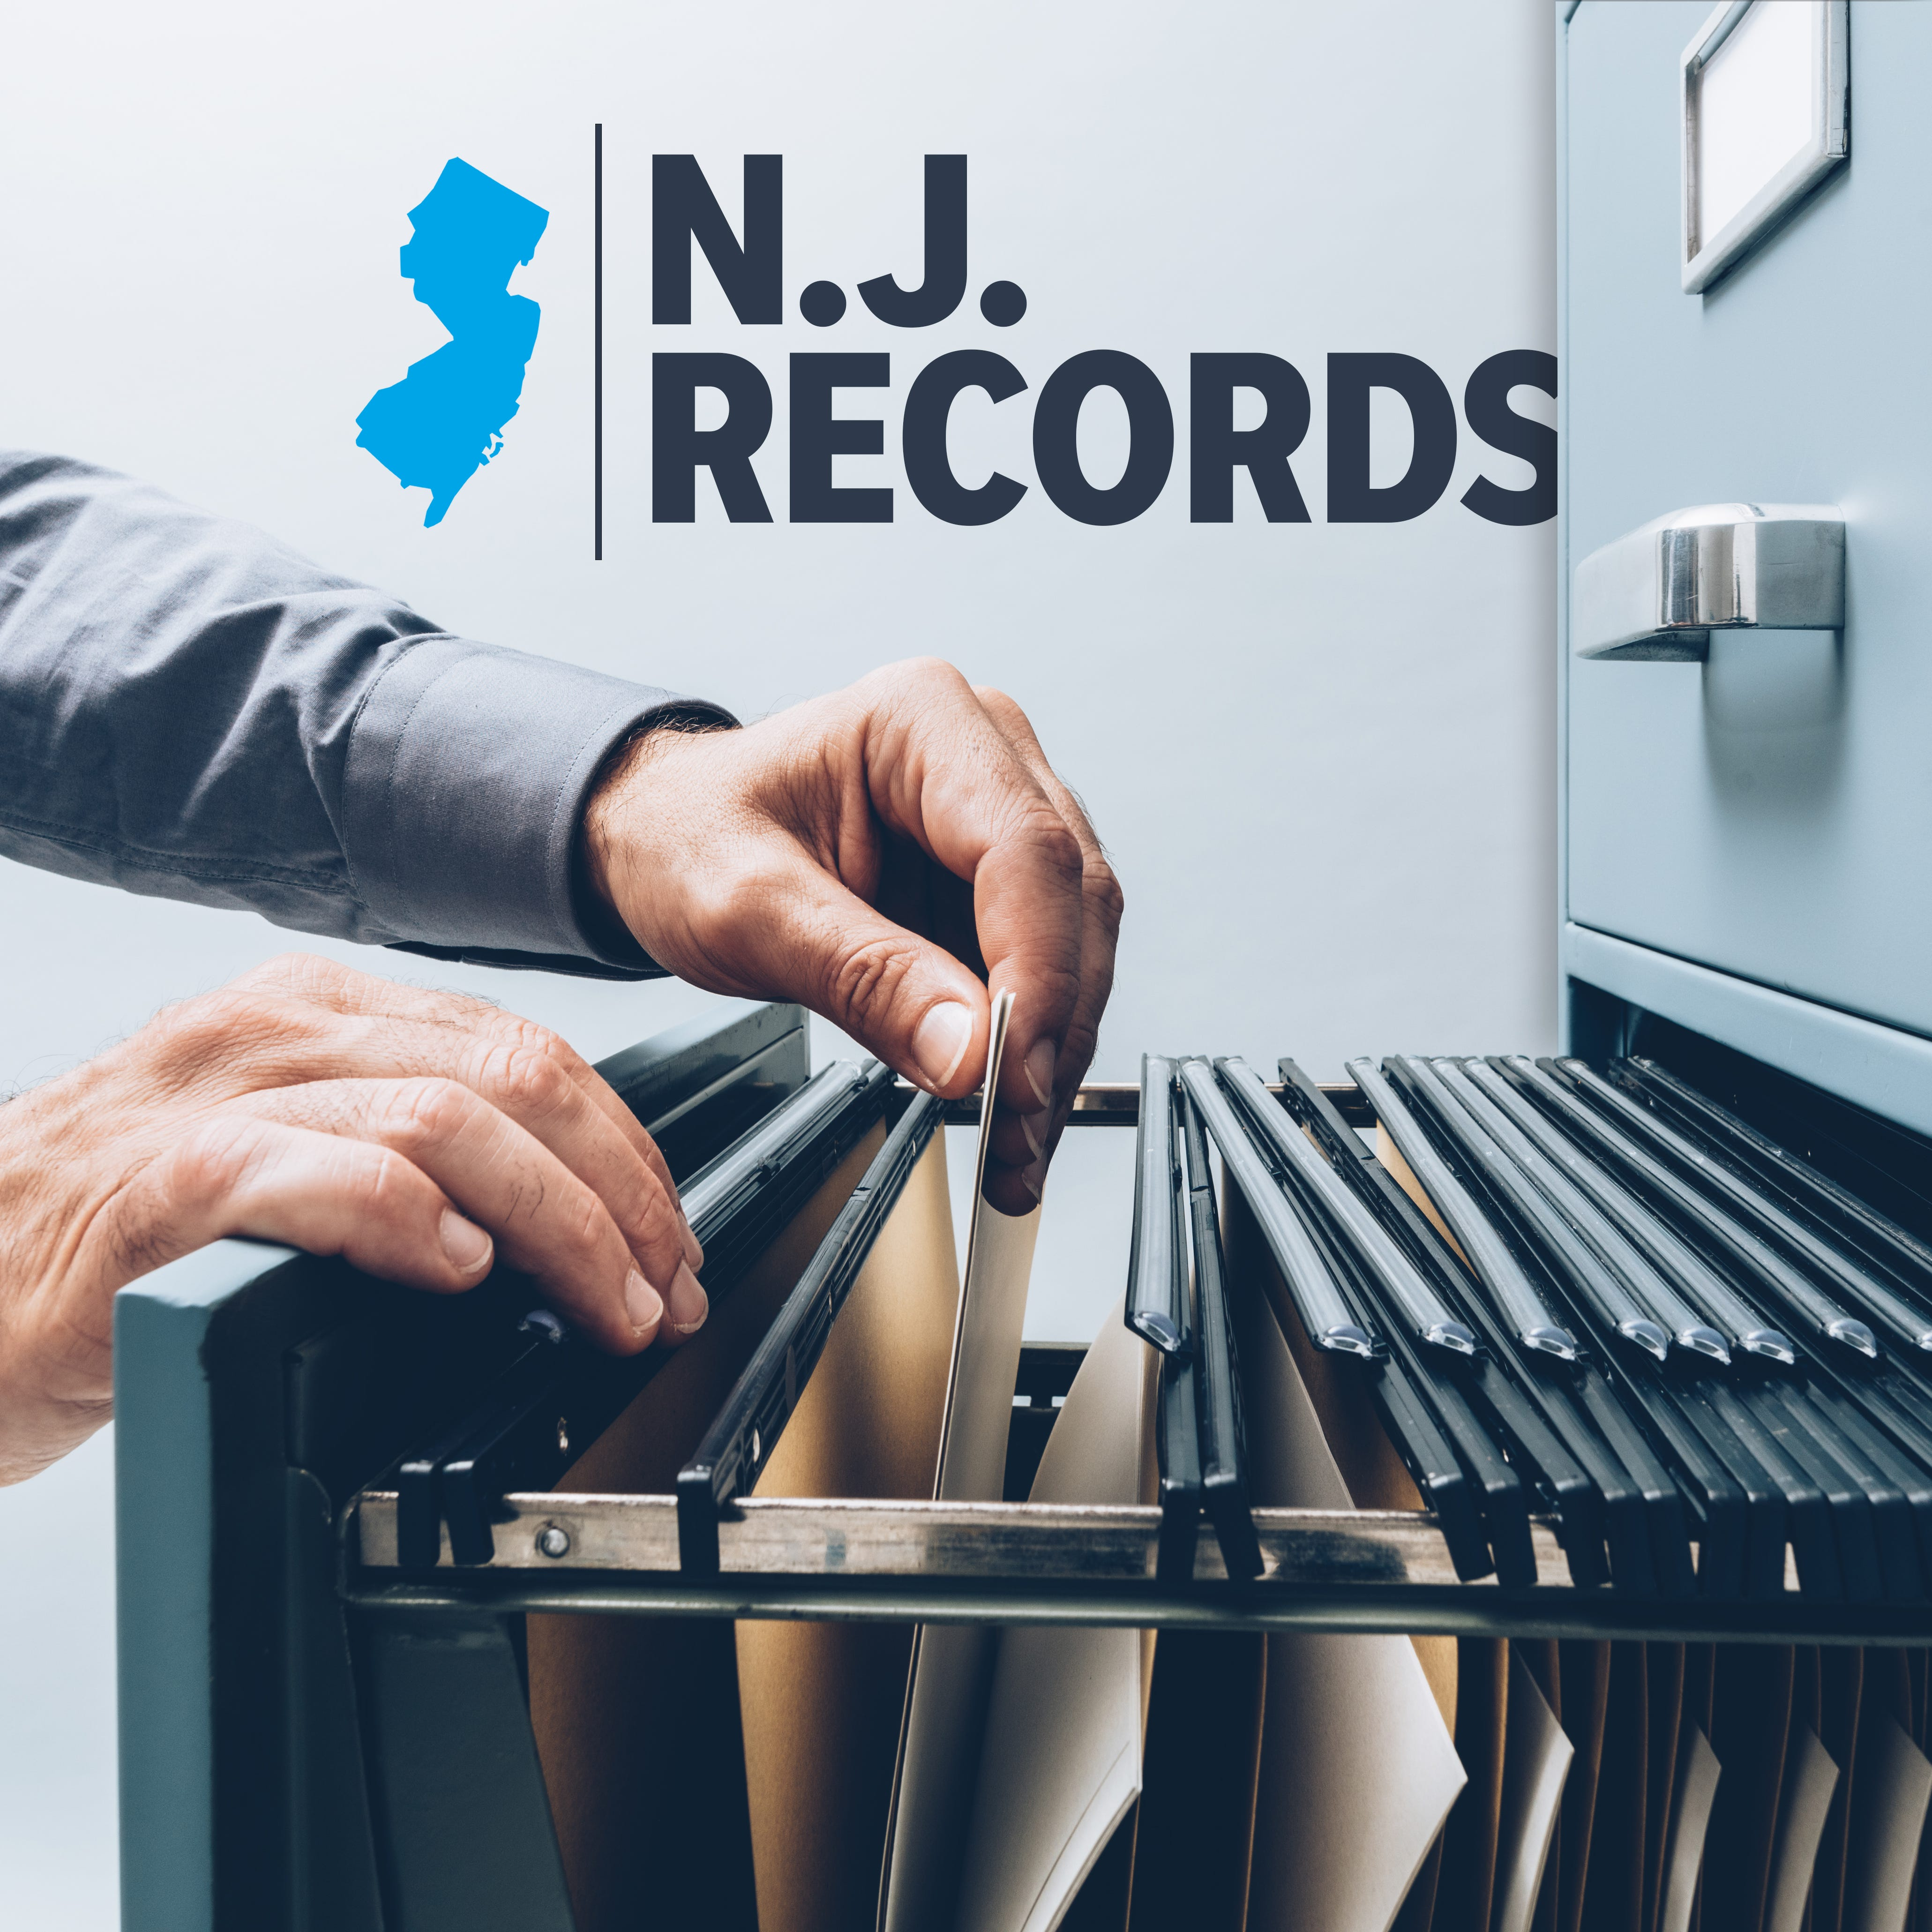 Ocean county nj tax records